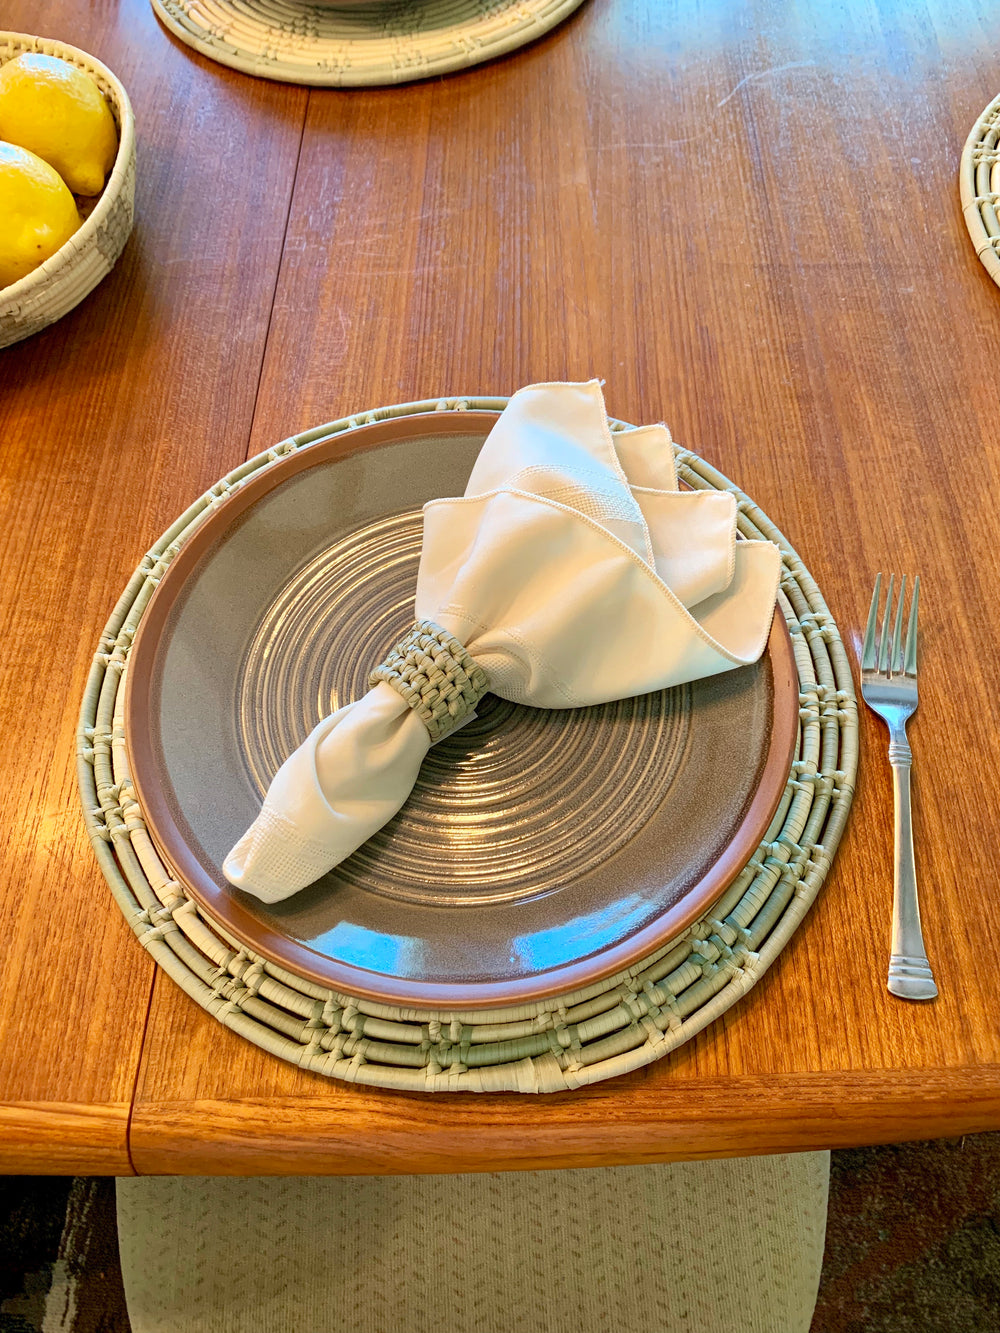 Woven Placemat by 2nd Story Goods from Haiti